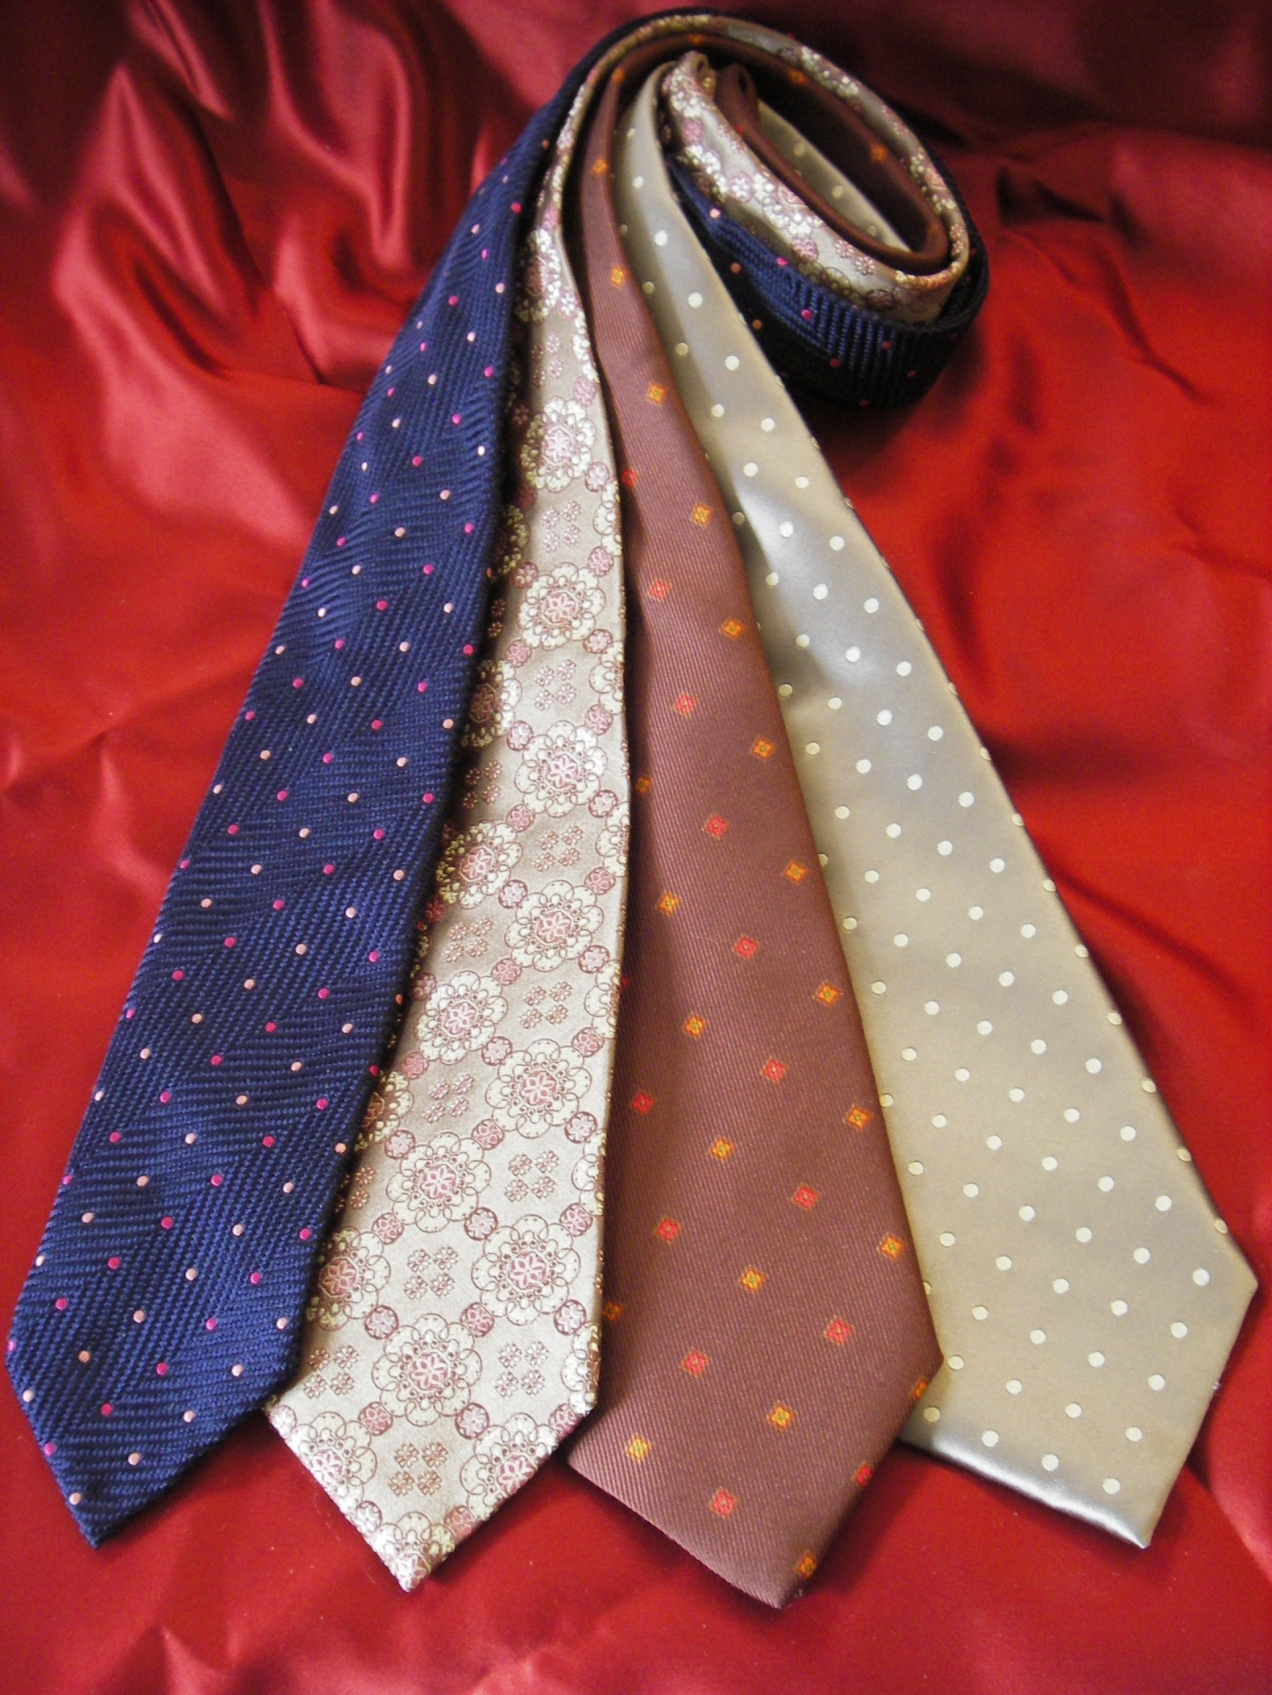 Fashion accessories store, silk ties, bow ties, scarves.